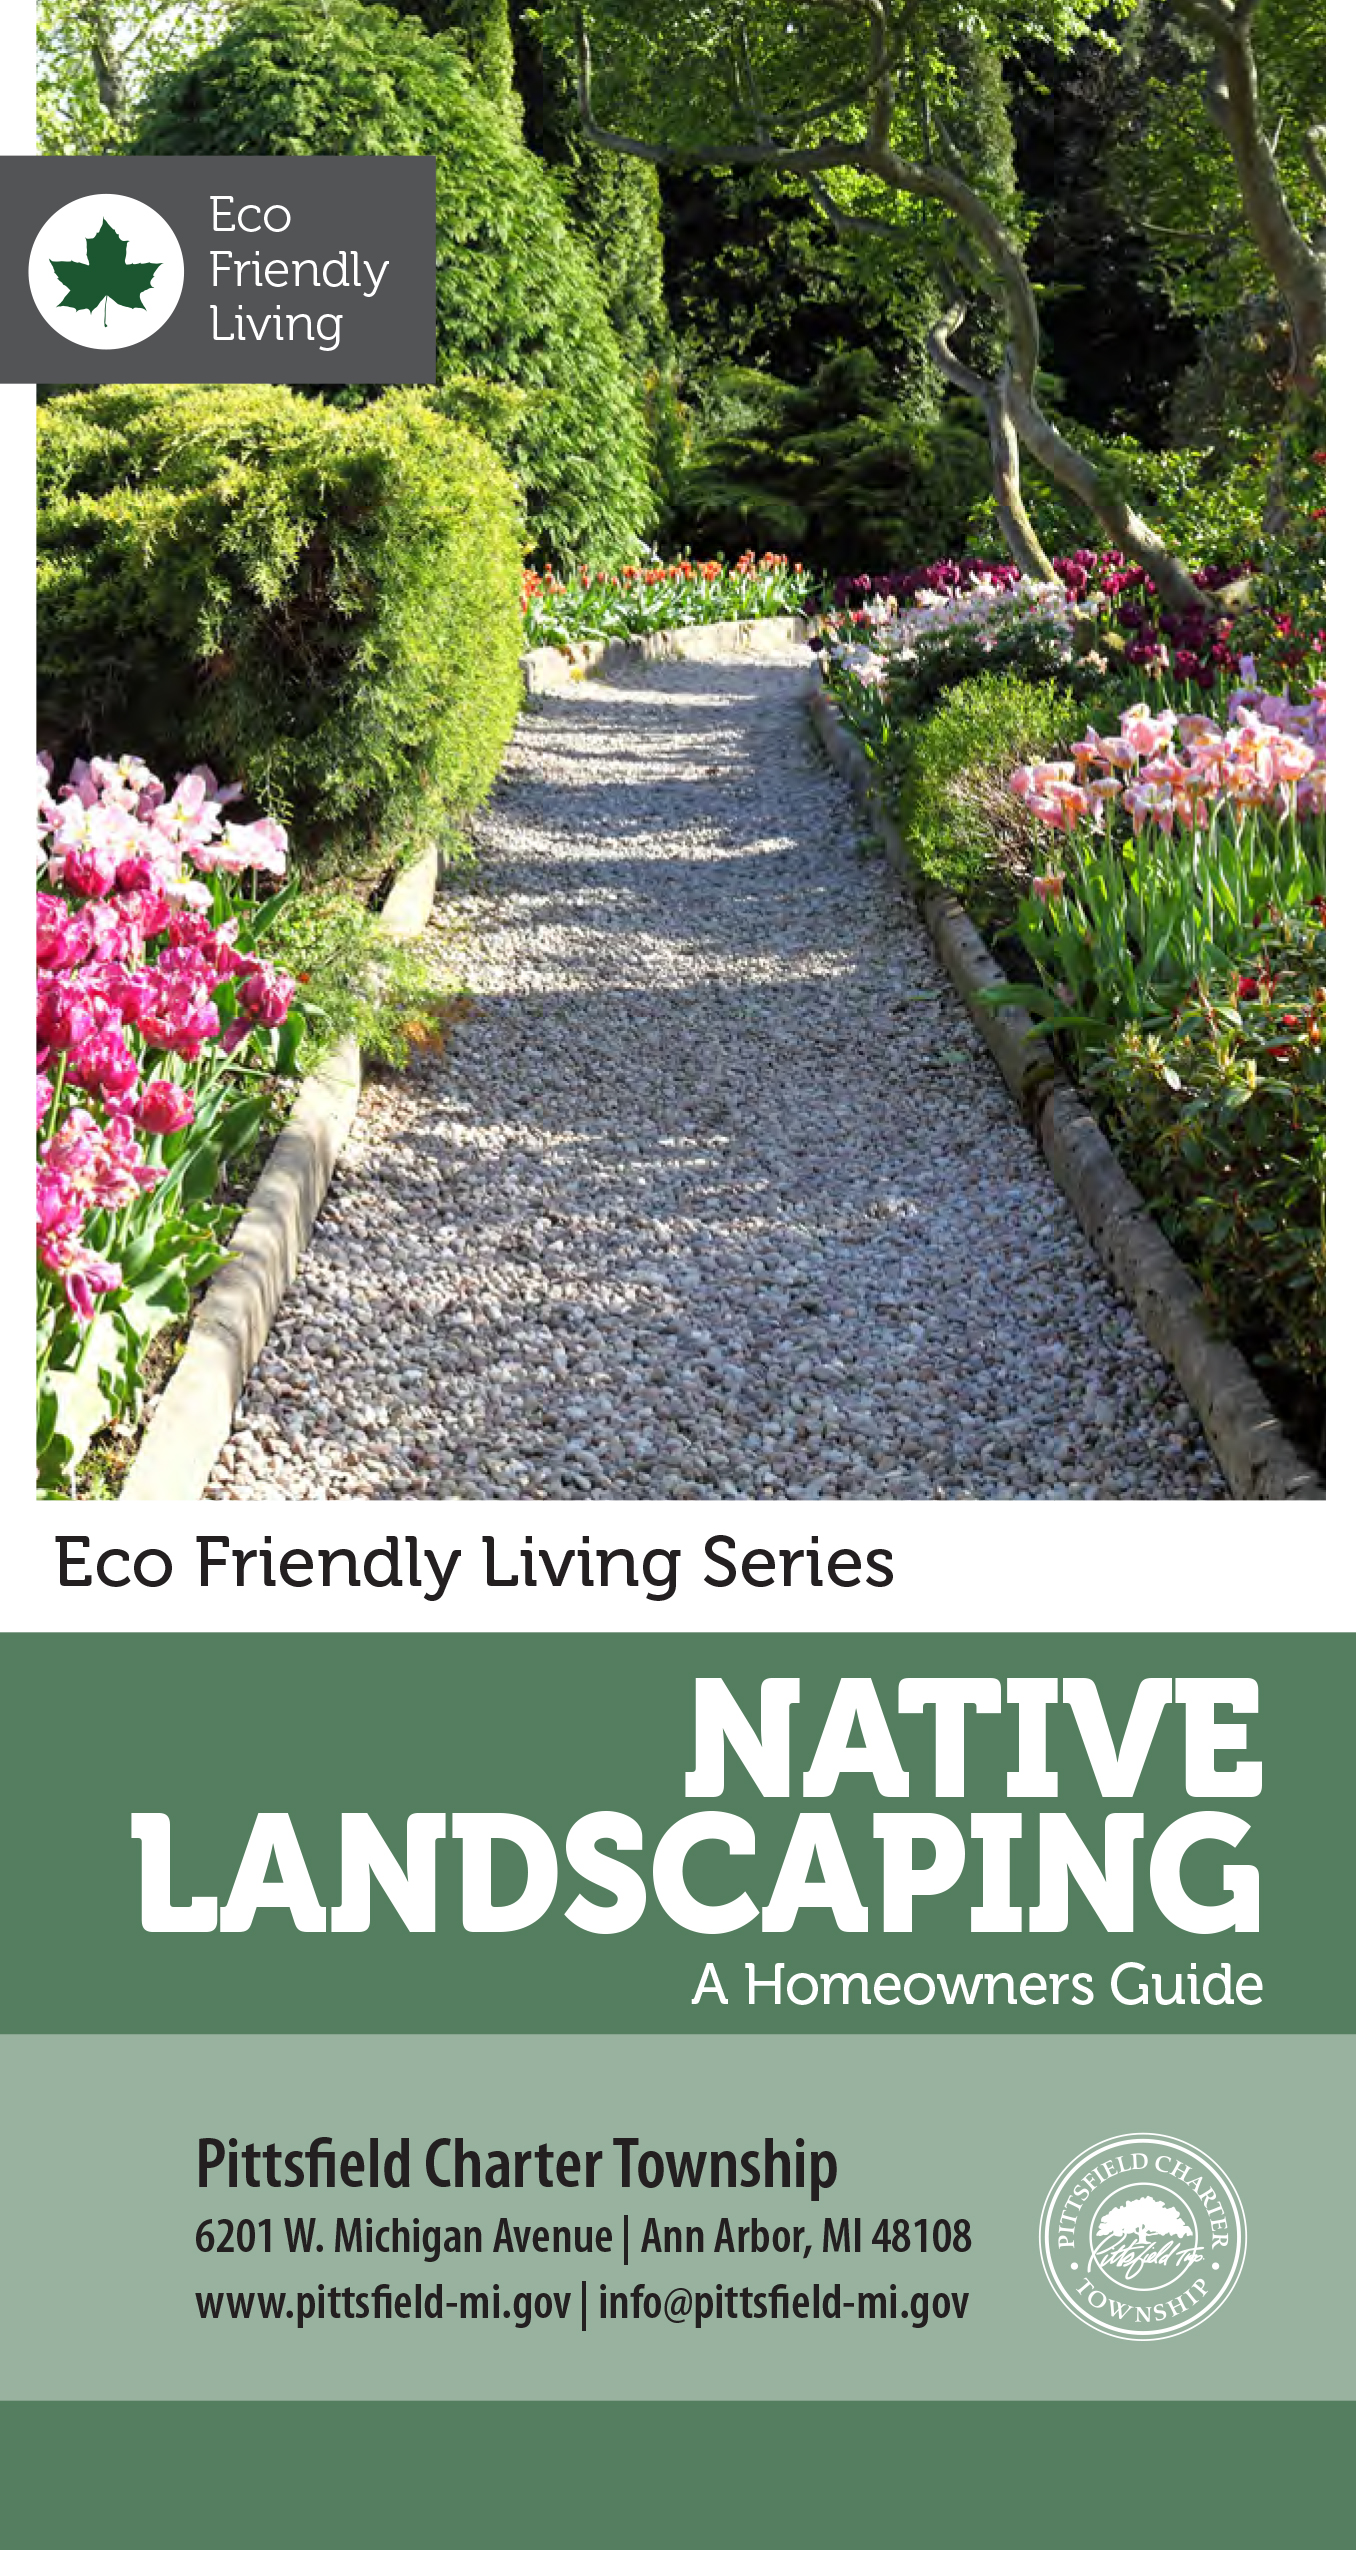 native landscaping Opens in new window